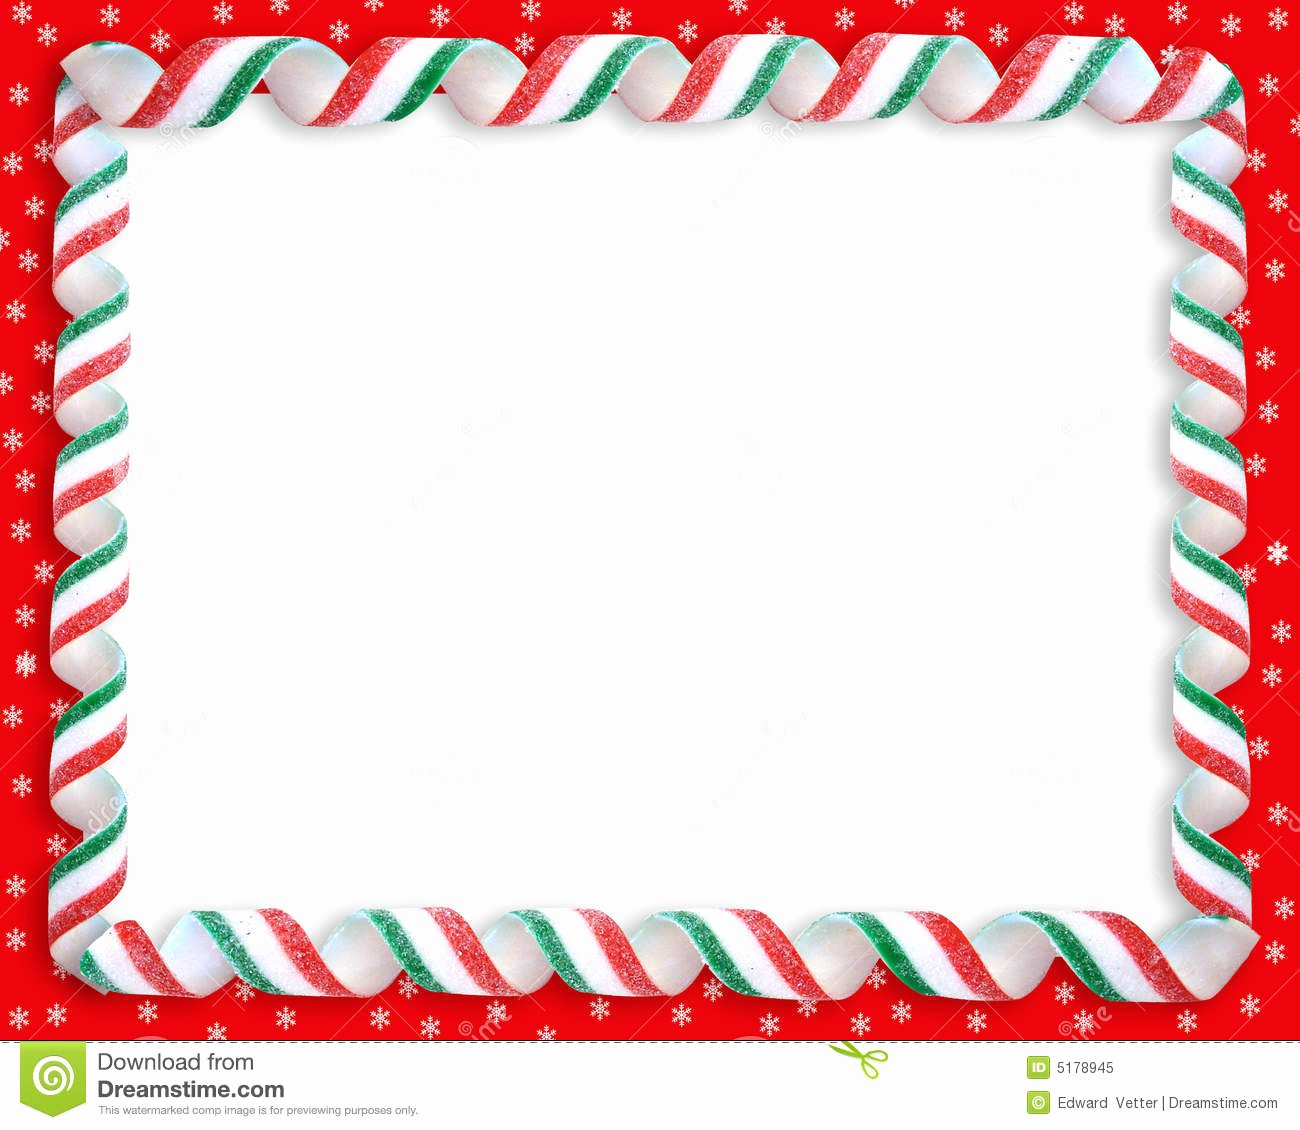 Free Christmas Clipart Borders Frames – 101 Clip Art